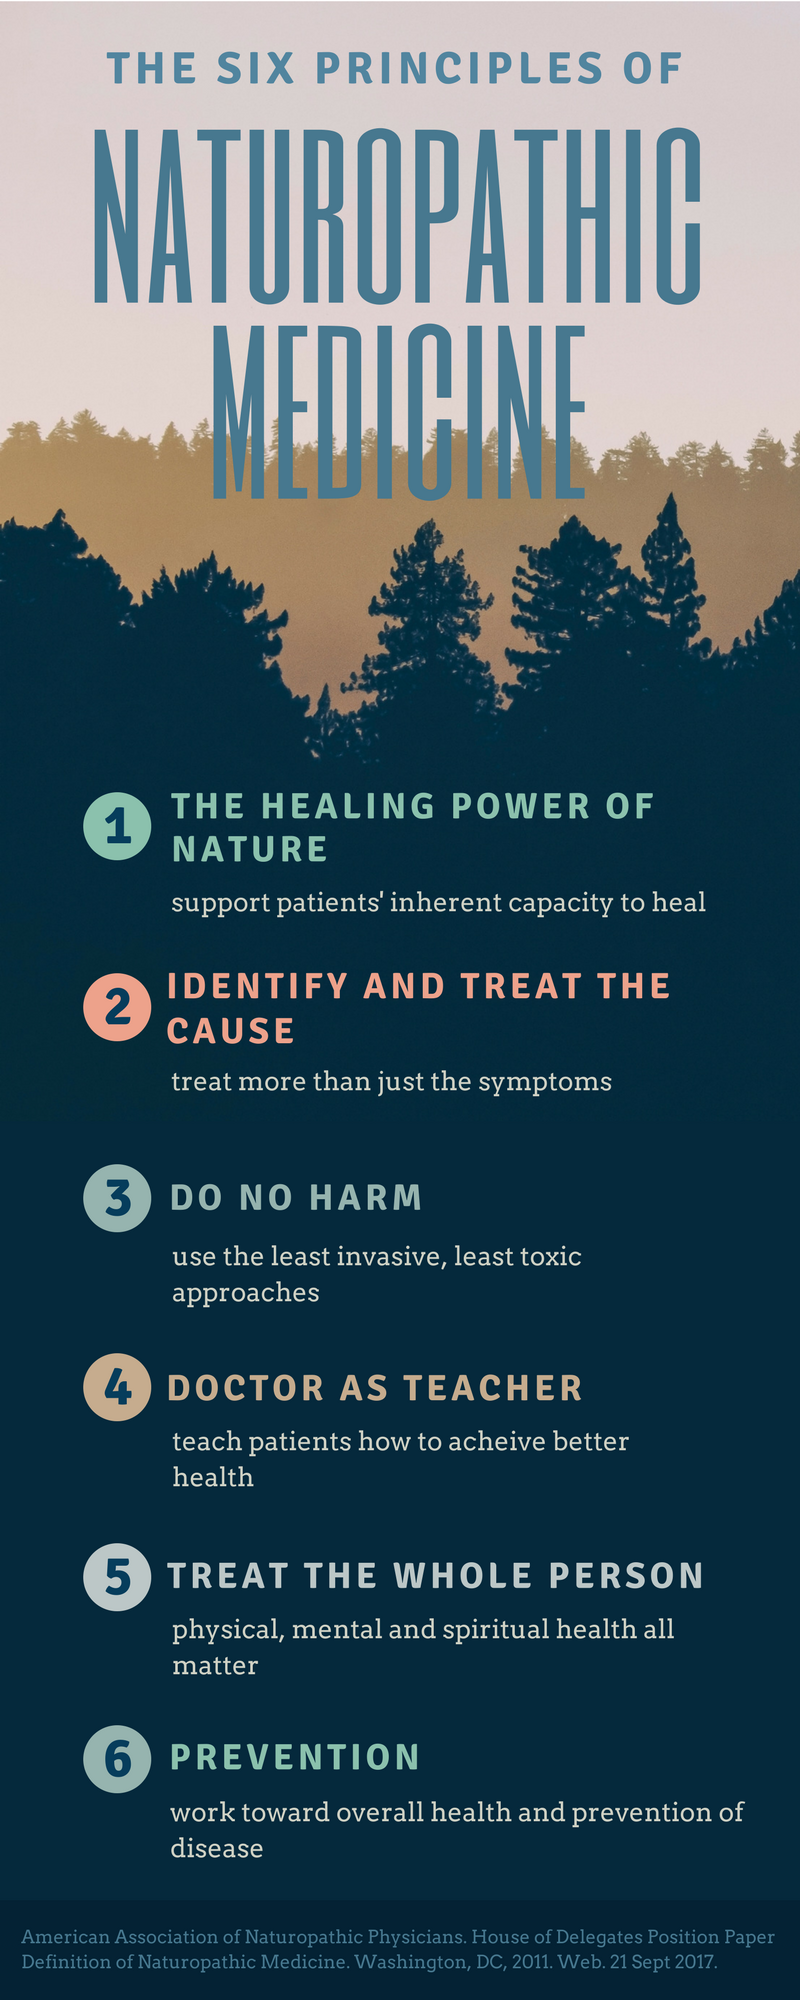 Blending the best of modern and traditional medicine - The tools that are often used by naturopathic doctors include diet and lifestyle counseling, medicinal herbs, homeopathic remedies, bodywork, hydrotherapy and occasionally, prescription medication.From the American Association of Naturopathic Physicians: